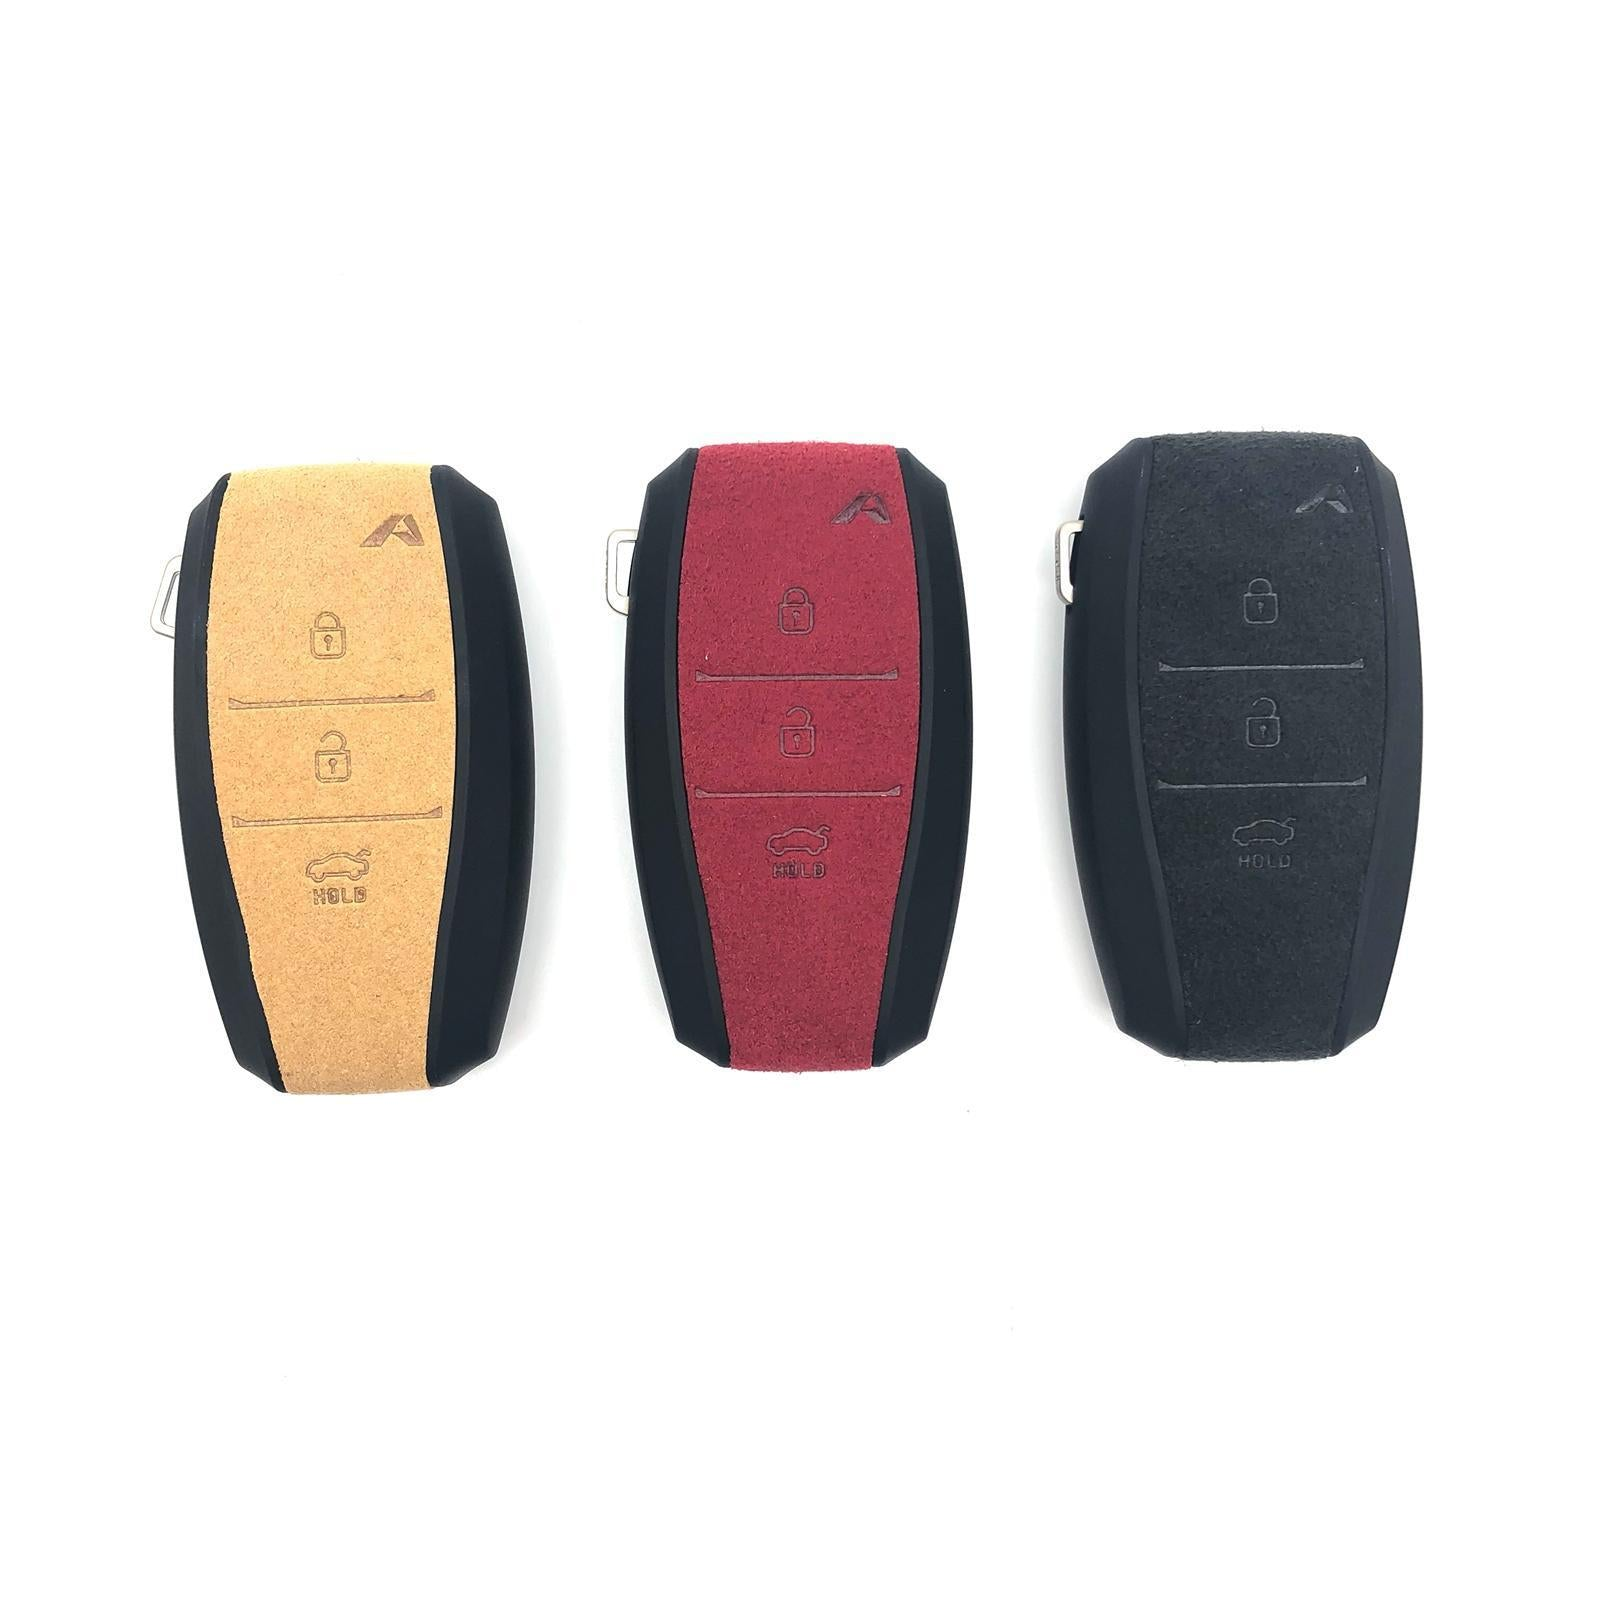 Aegis Aero Alcantara Leather Hyundai I30 (2600) 3 Button Smart Key Case - GRAY